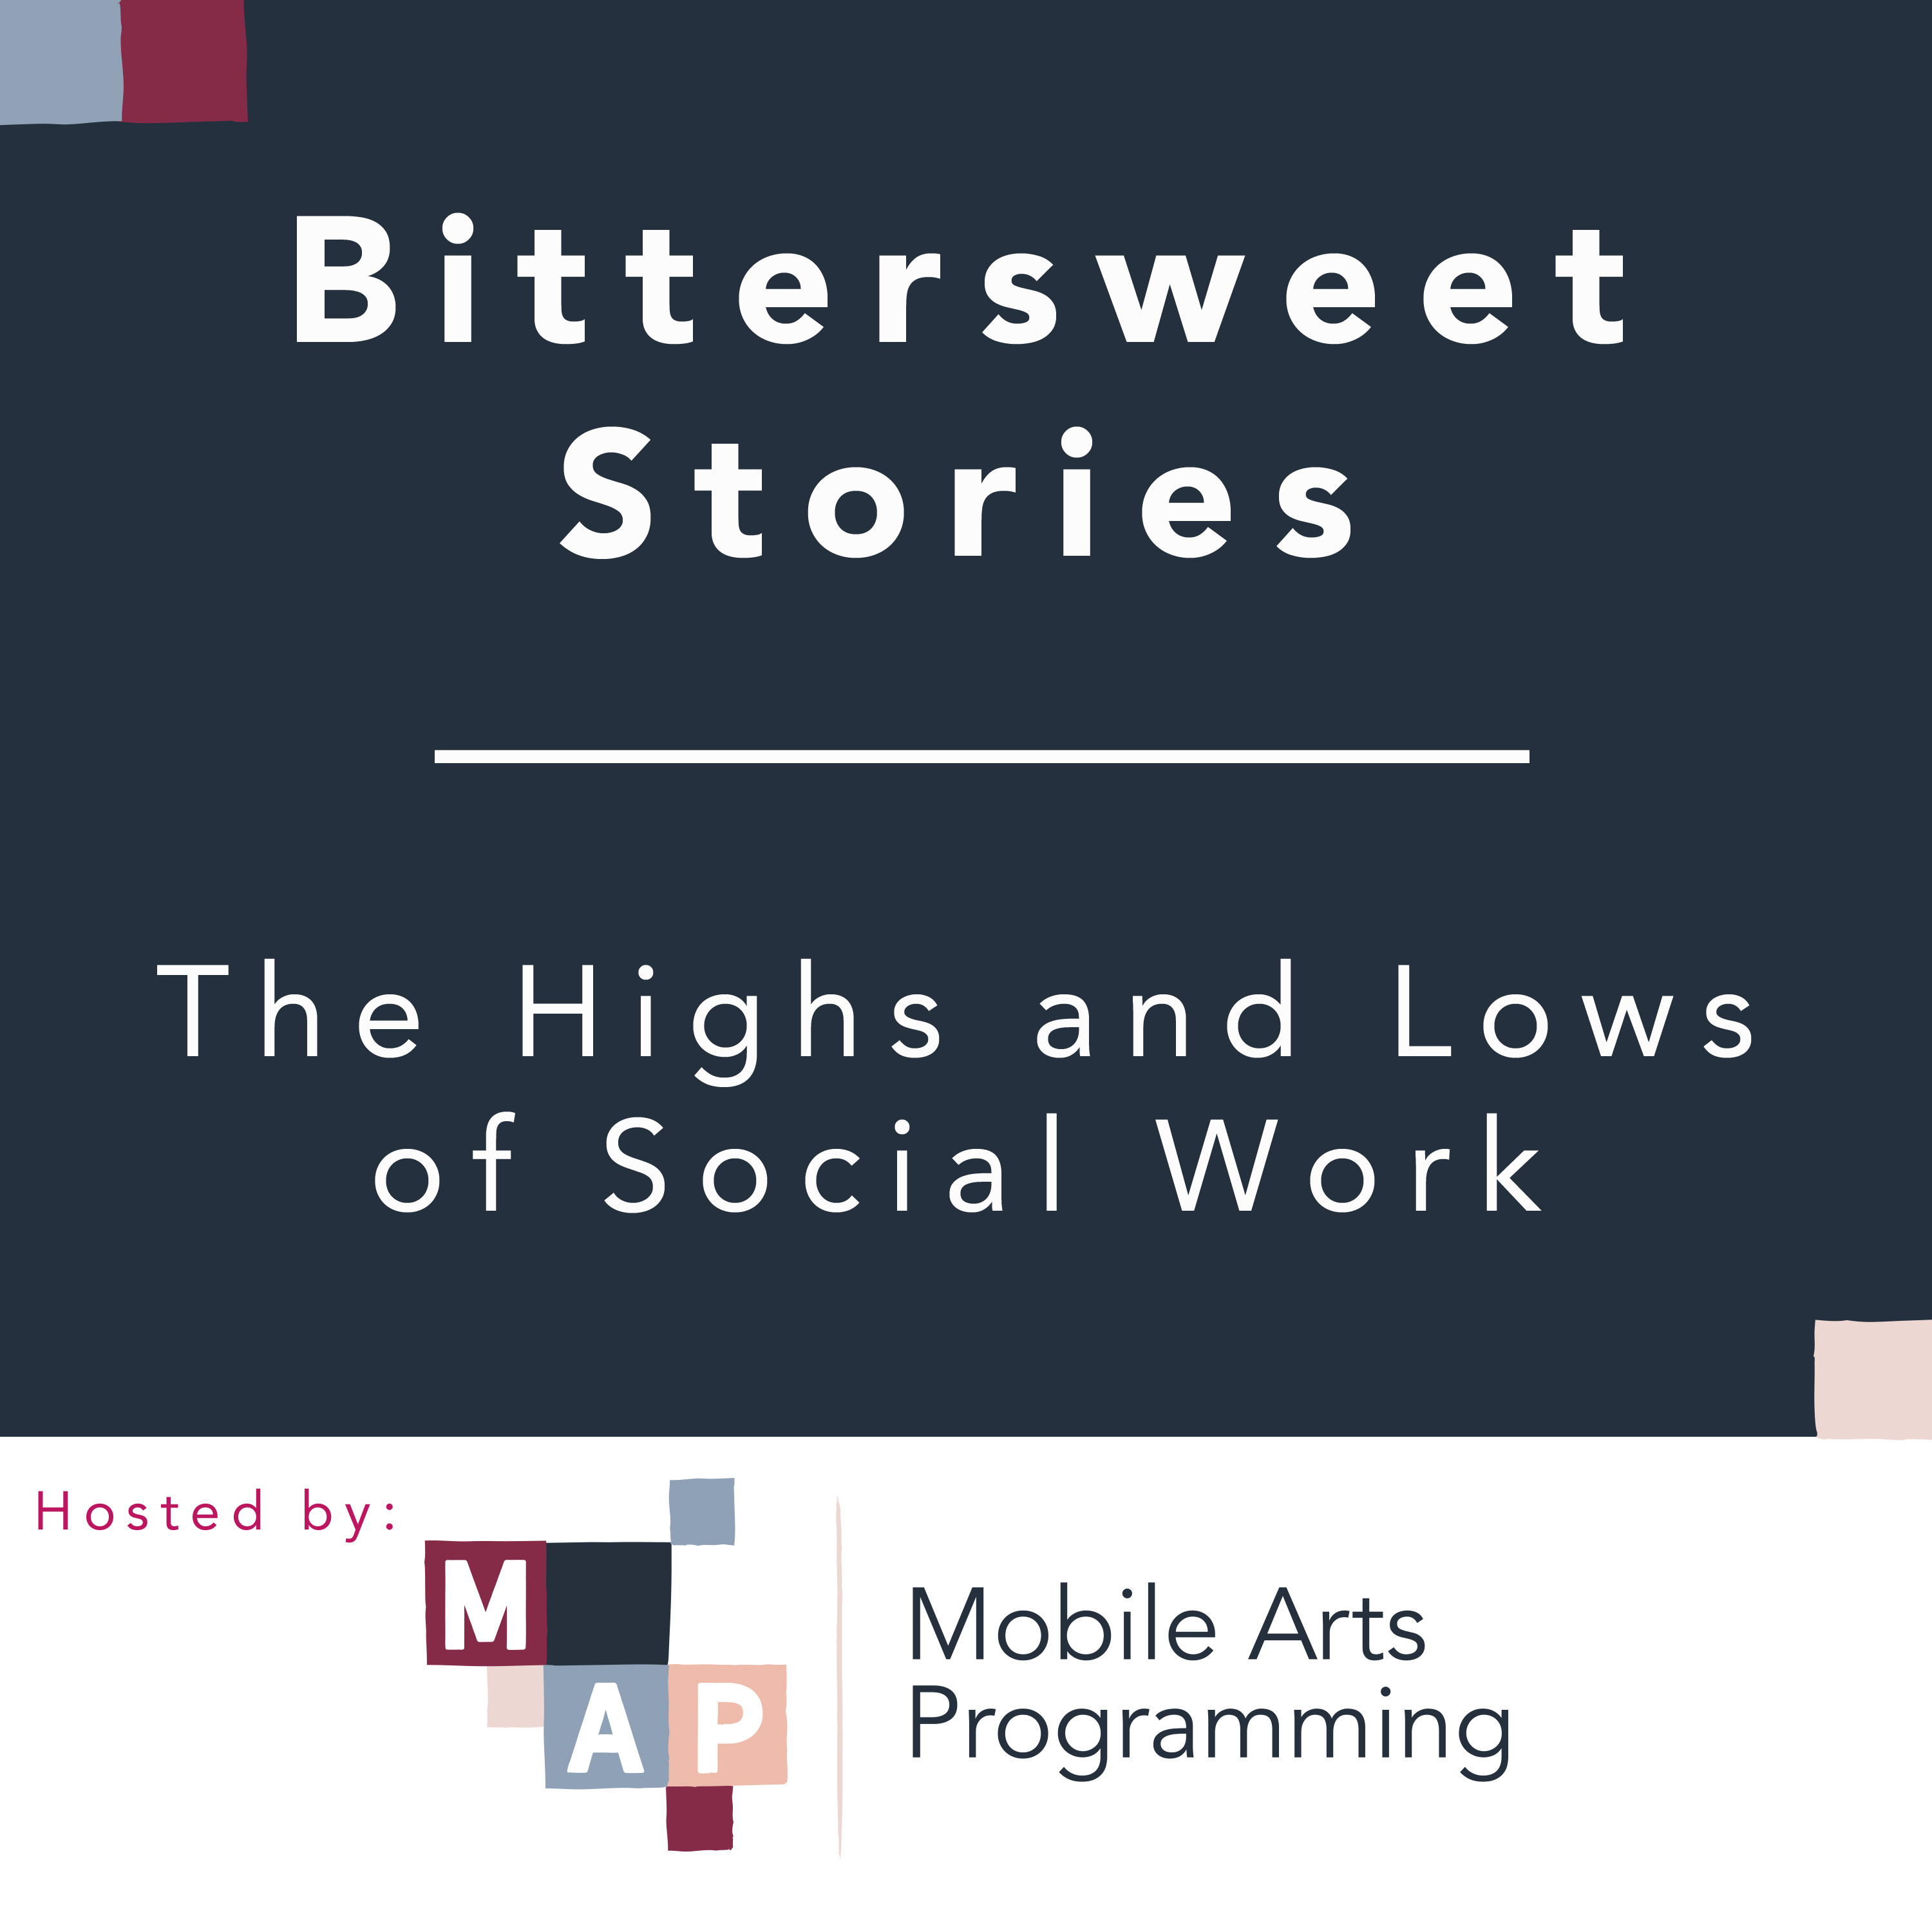 Bittersweet Stories - Surviving With Self Care